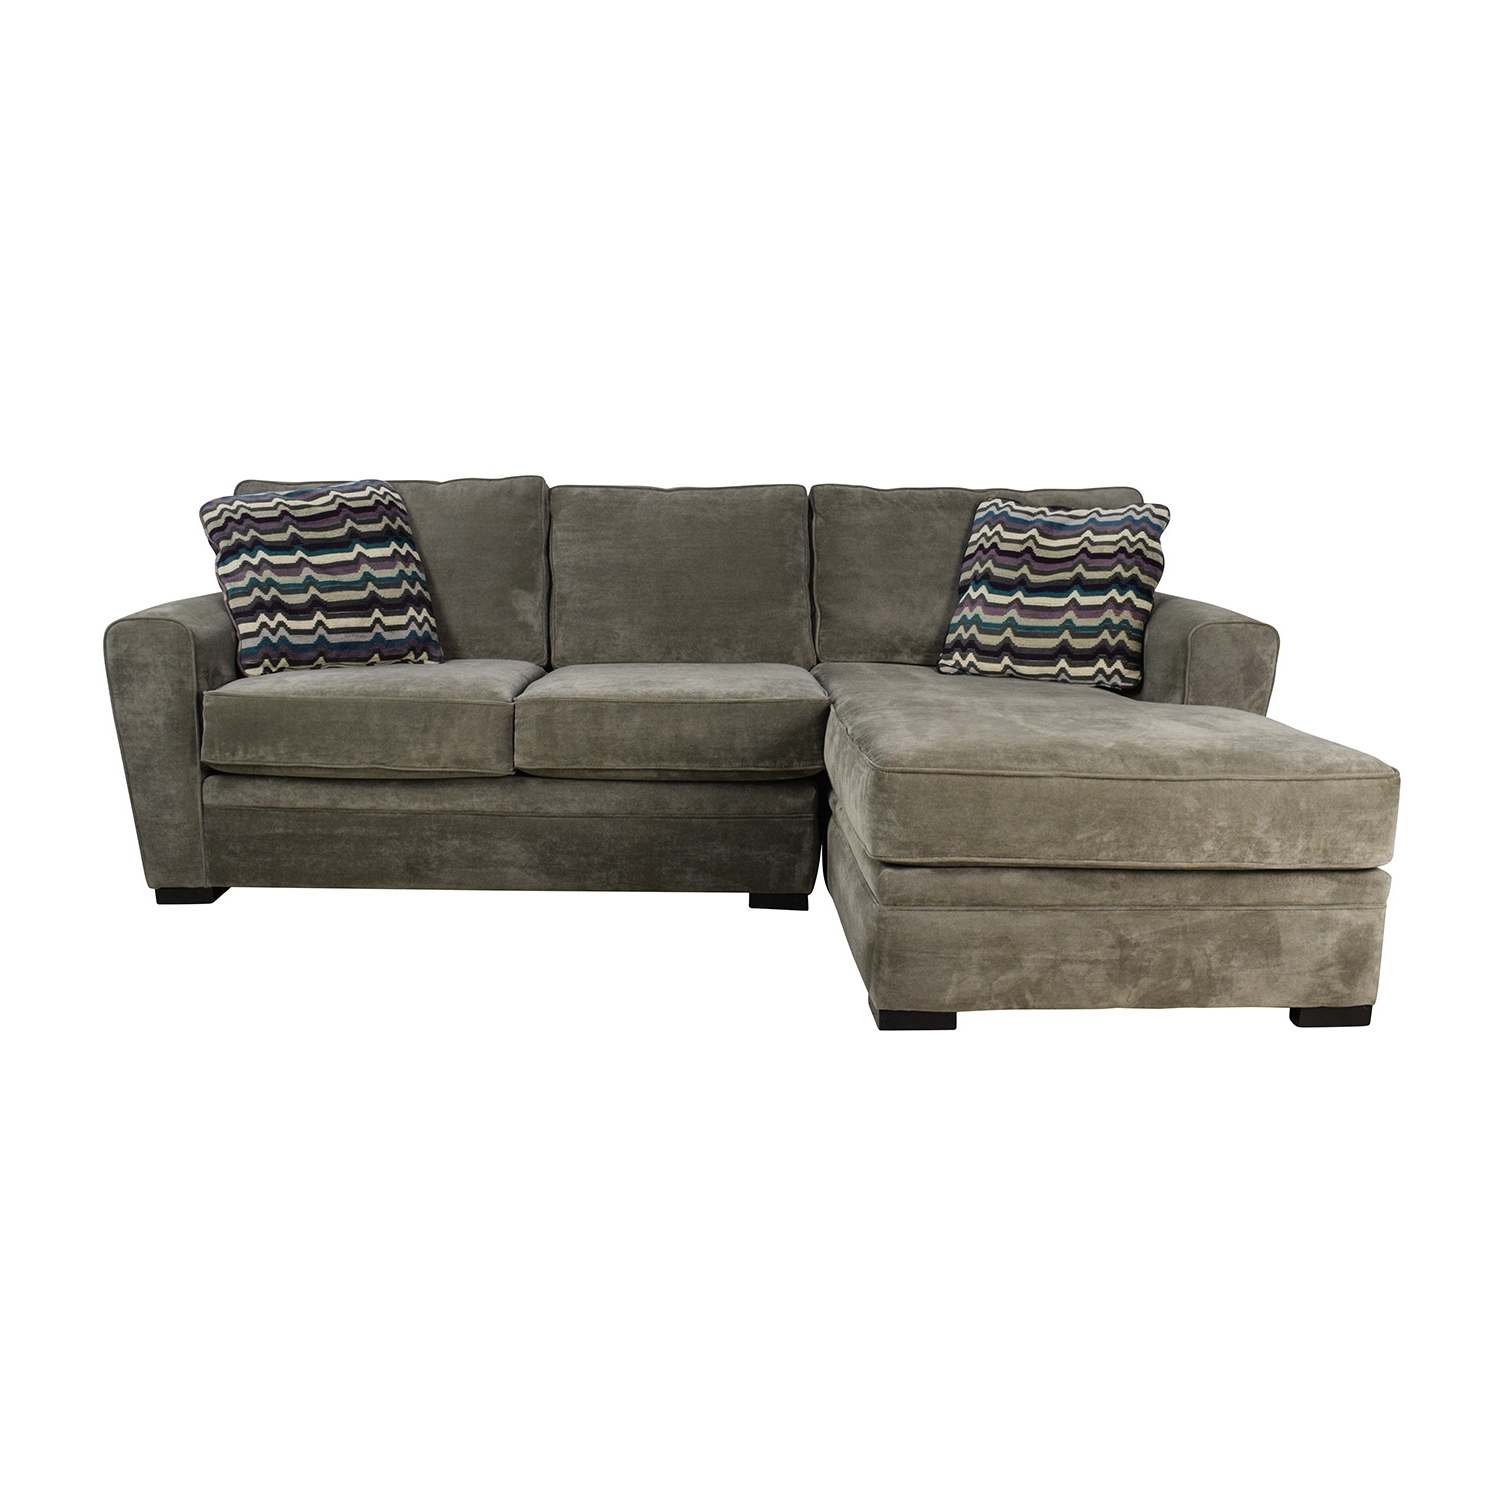 [%52% Off – Raymour & Flanigan Raymour & Flanigan Artemis Ii For Trendy Sectional Sofas At Raymour And Flanigan|sectional Sofas At Raymour And Flanigan In Most Recent 52% Off – Raymour & Flanigan Raymour & Flanigan Artemis Ii|2019 Sectional Sofas At Raymour And Flanigan Inside 52% Off – Raymour & Flanigan Raymour & Flanigan Artemis Ii|popular 52% Off – Raymour & Flanigan Raymour & Flanigan Artemis Ii For Sectional Sofas At Raymour And Flanigan%] (View 15 of 20)